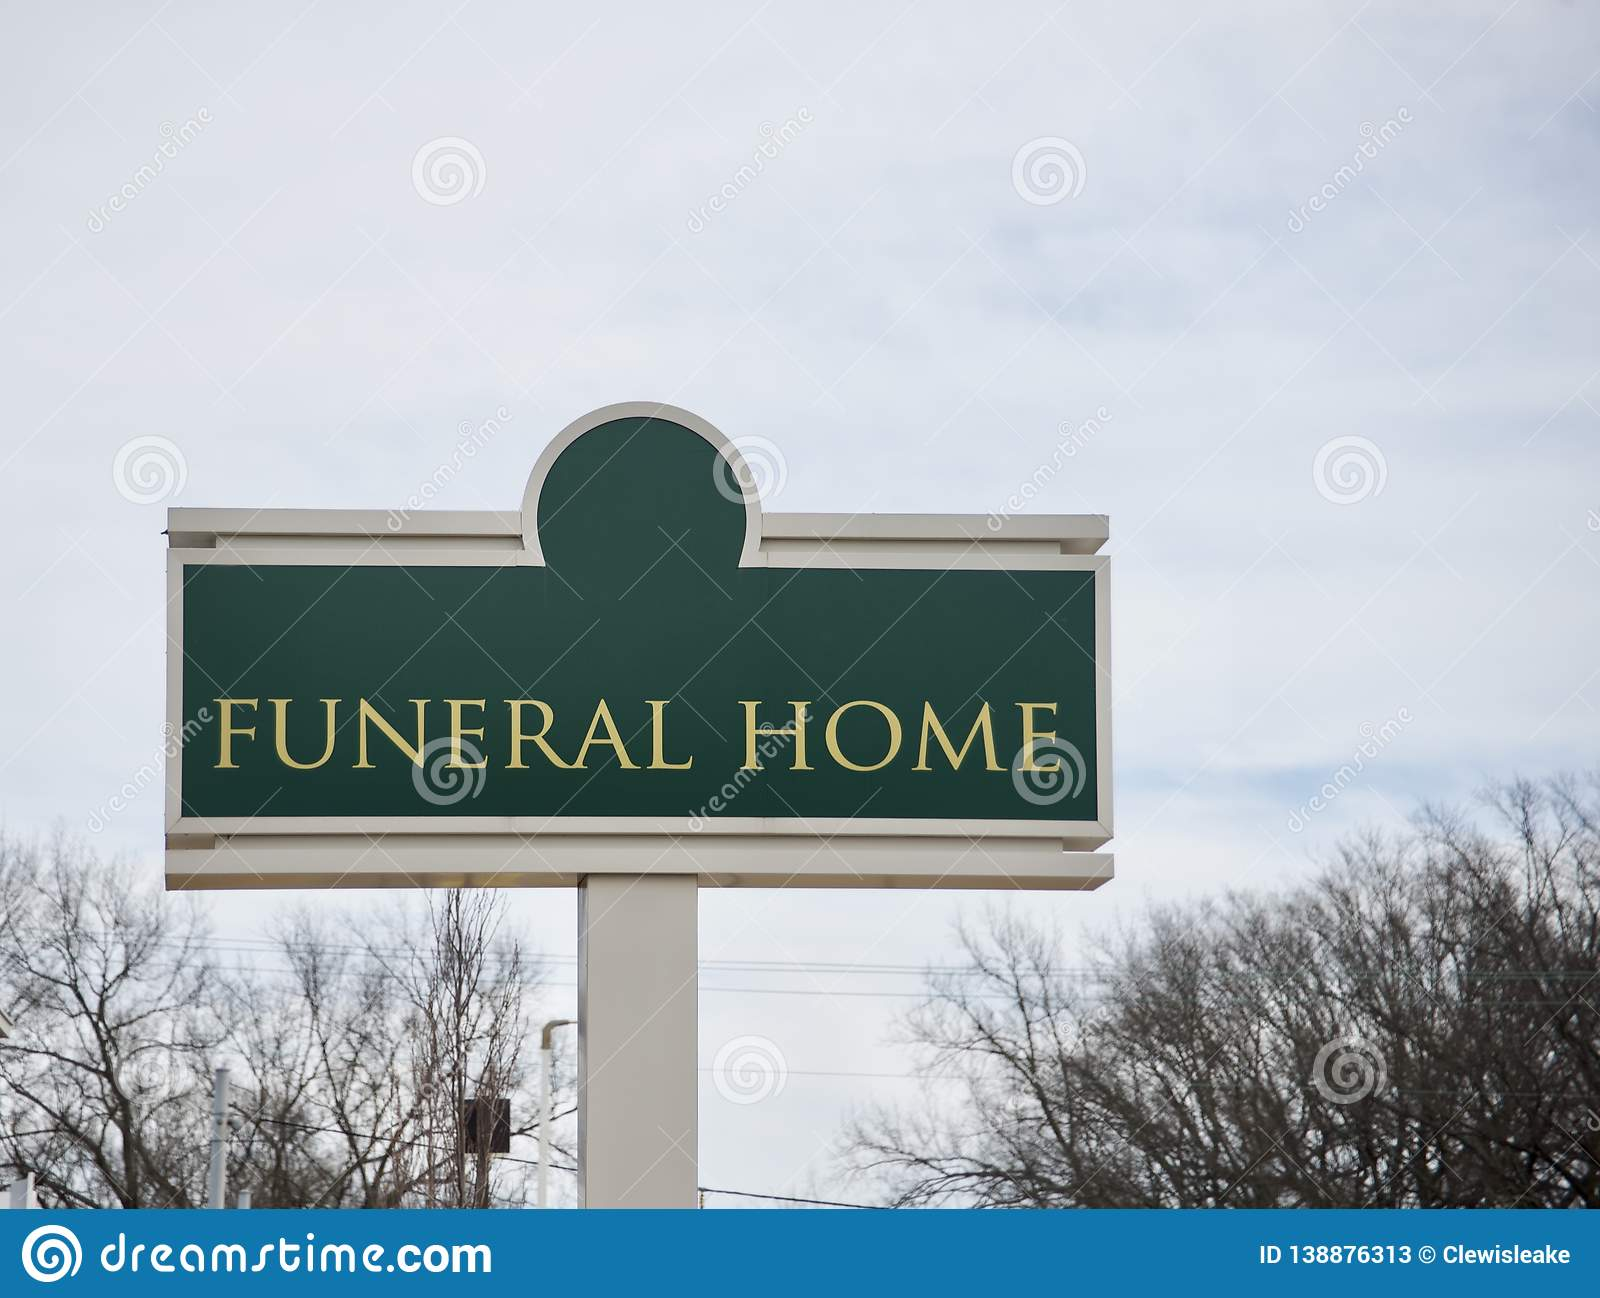 Funeral Home And Memorial Gardens  Stock Image - Image of